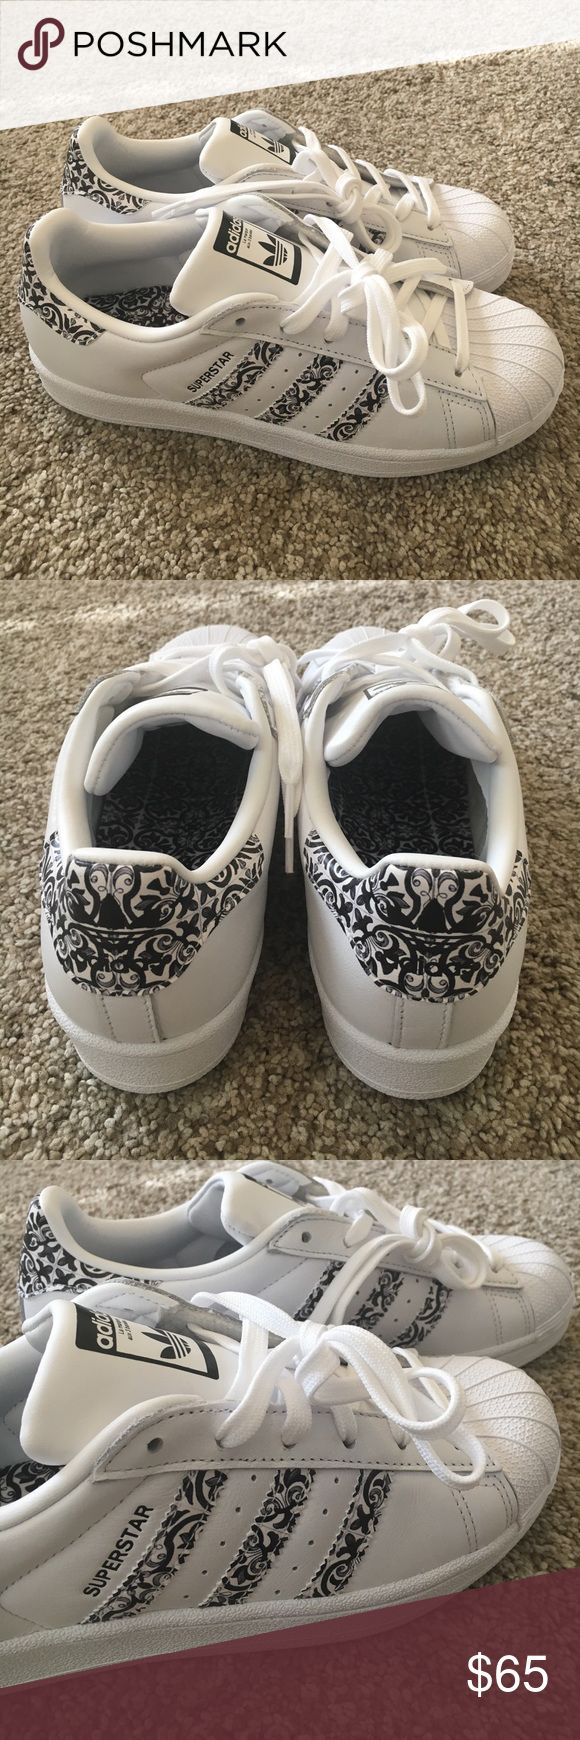 Adidas Superstars Brand new Adidas Superstar sneakers. Know your size in Adidas! These fit more like a women's US 7.5/8 adidas Shoes Sneakers